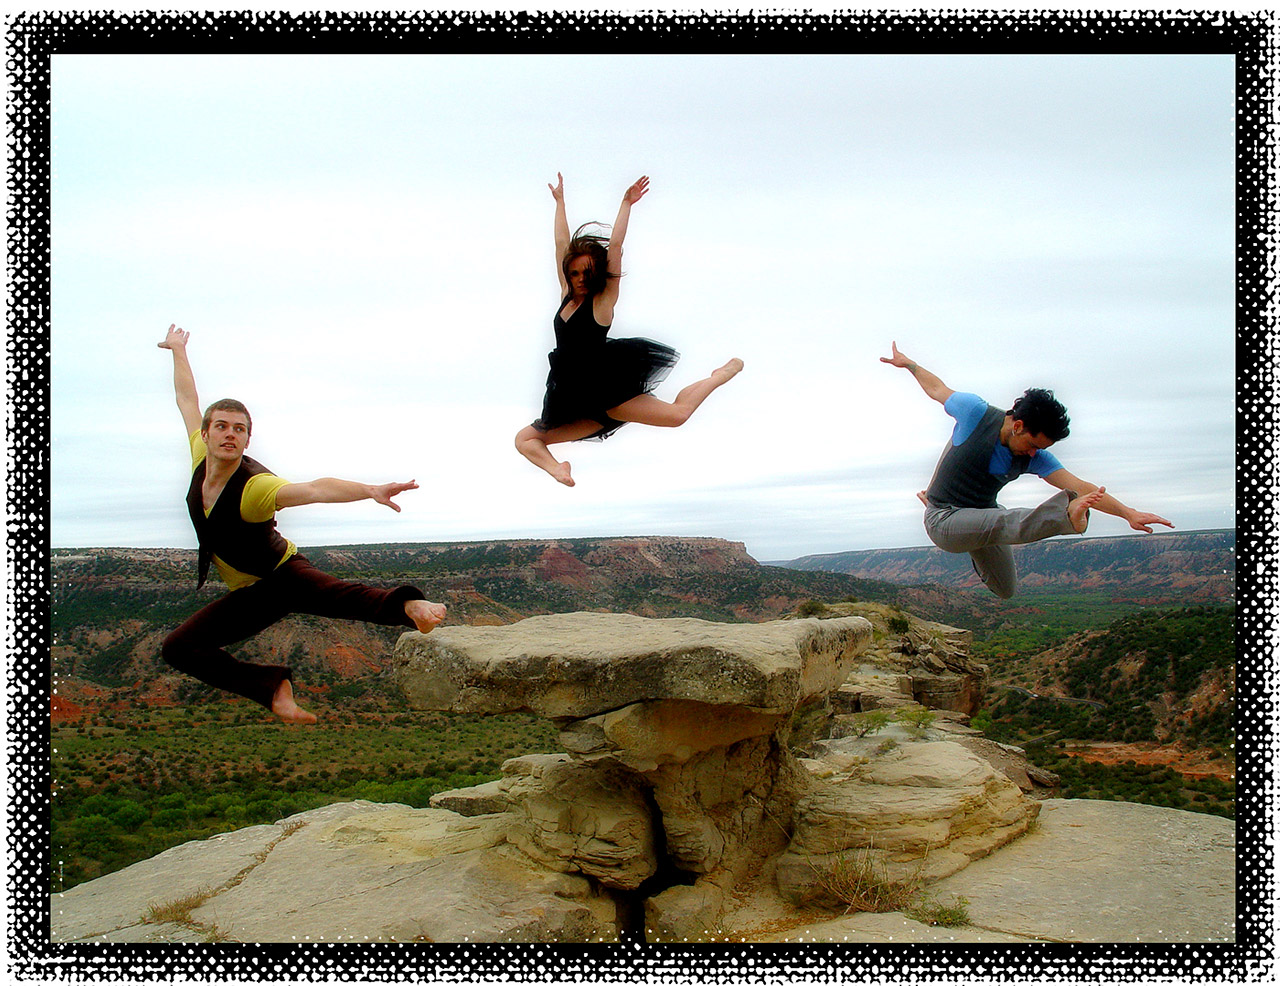 Three dancers in Palo Duro Canyon jumping off rock